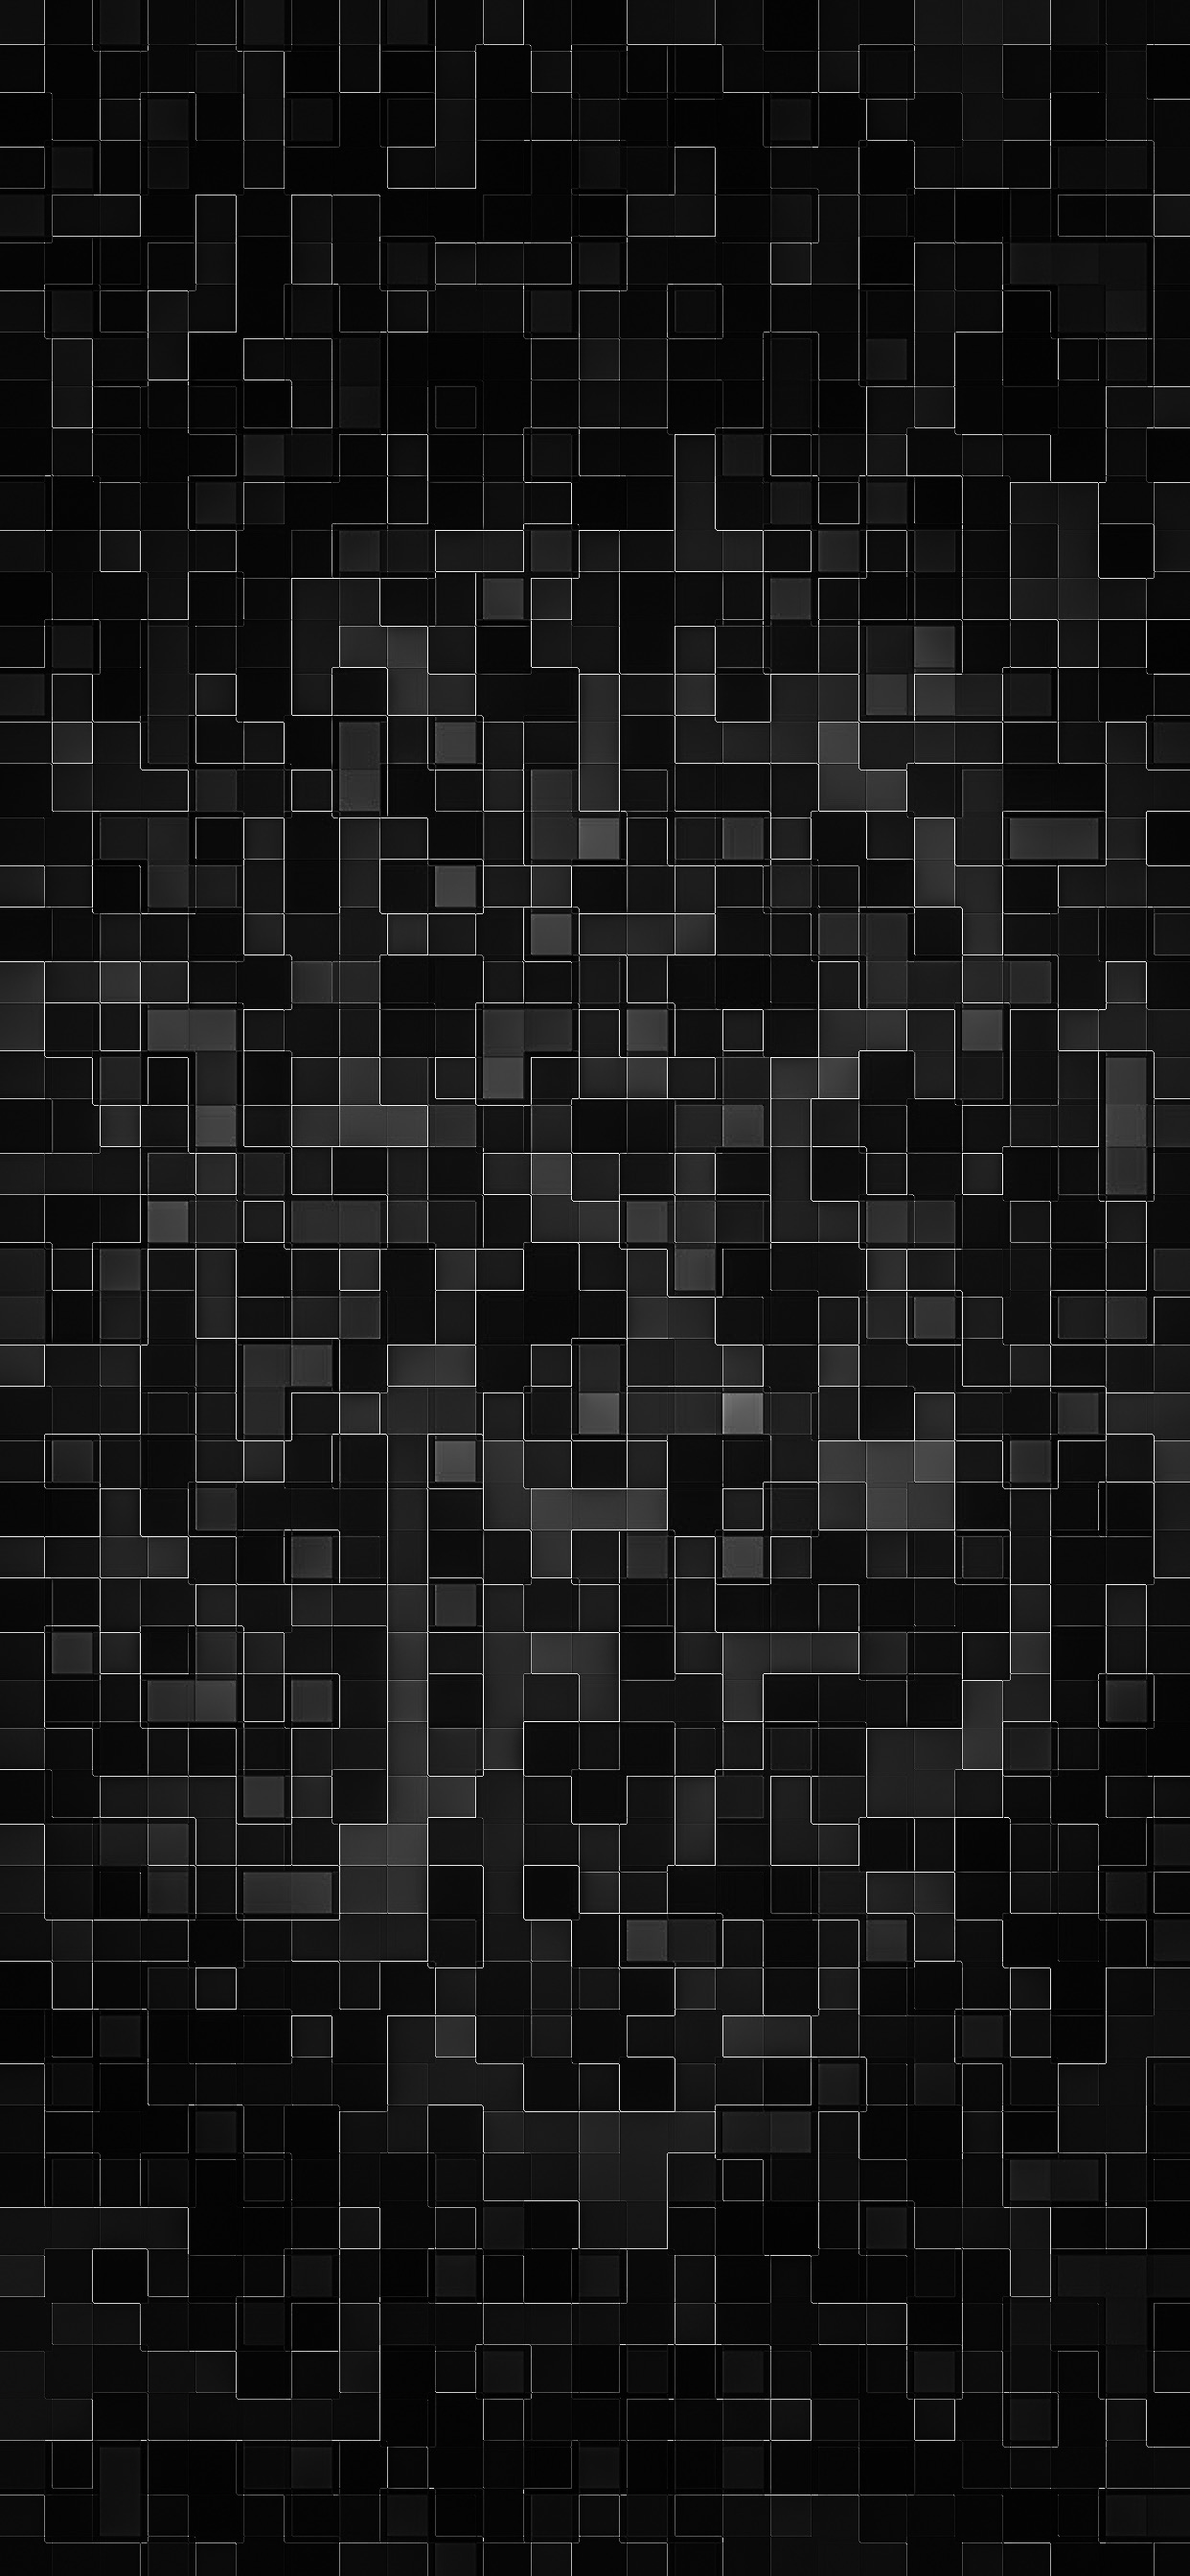 iPhone wallpaper abstract dark mosaic Fonds d'écran iPhone du 05/03/2019